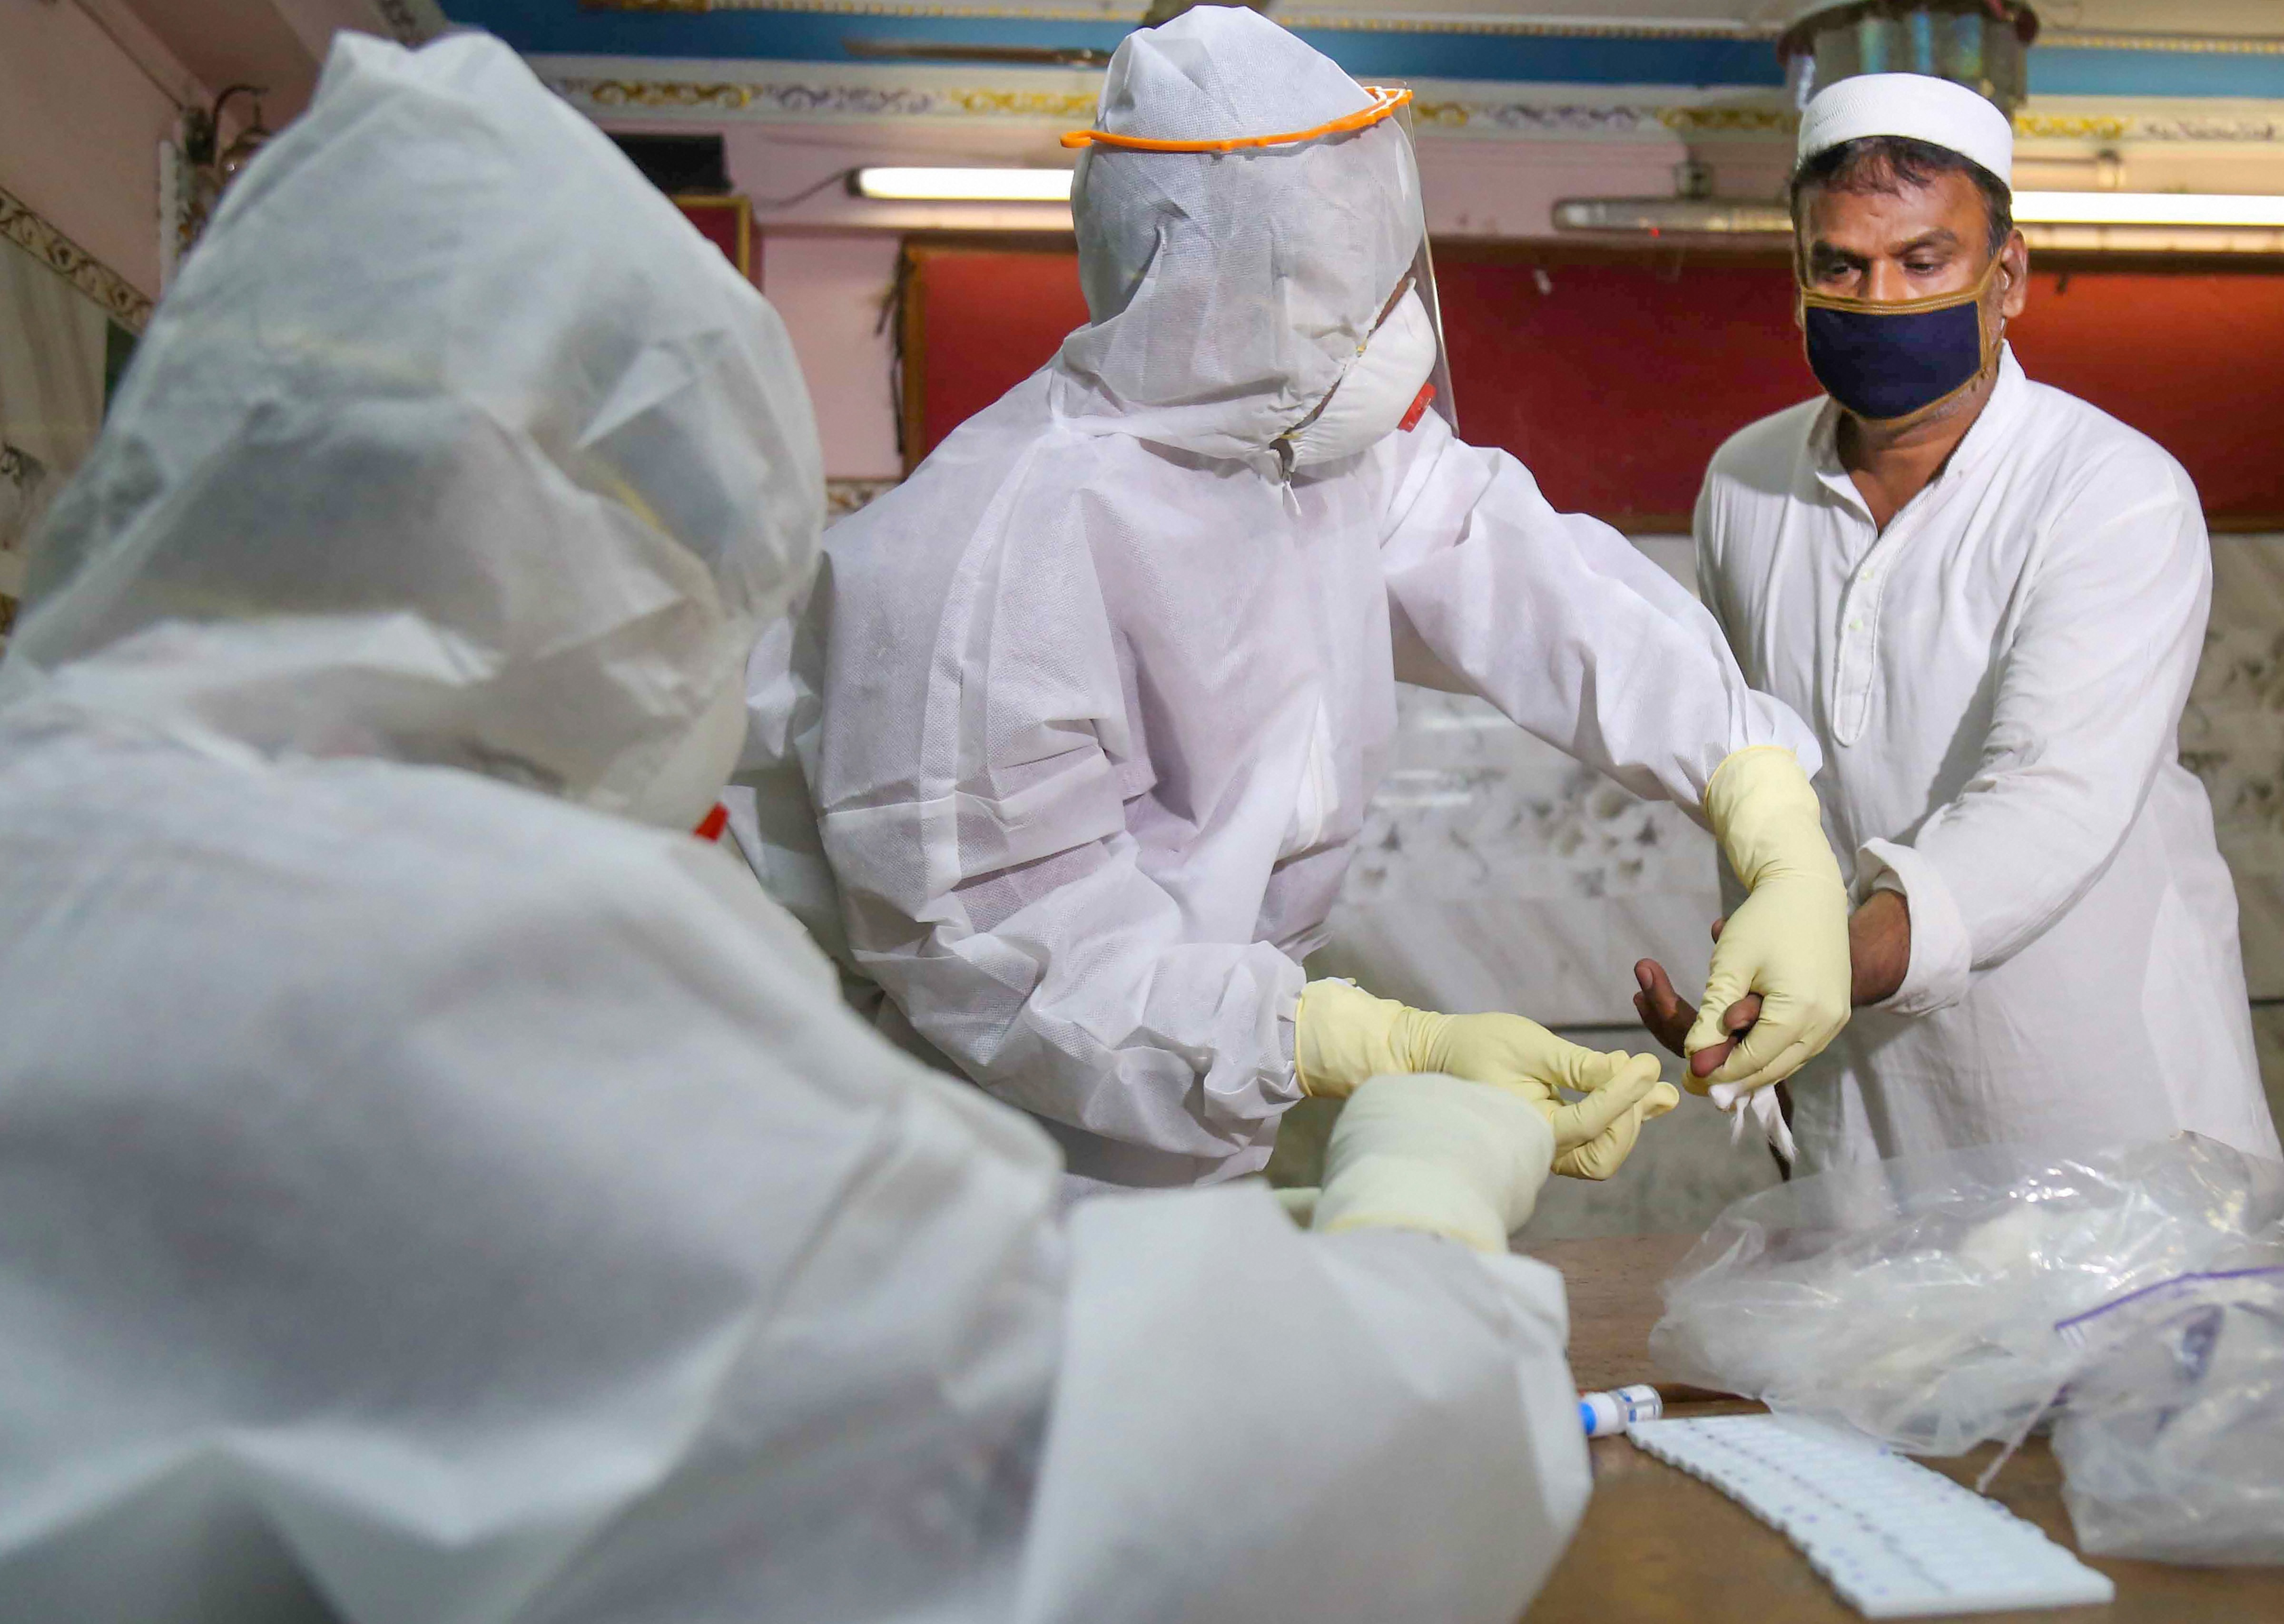 Health workers conduct a COVID-19 test of a person in wake of the coronavirus pandemic, during the nationwide lockdown